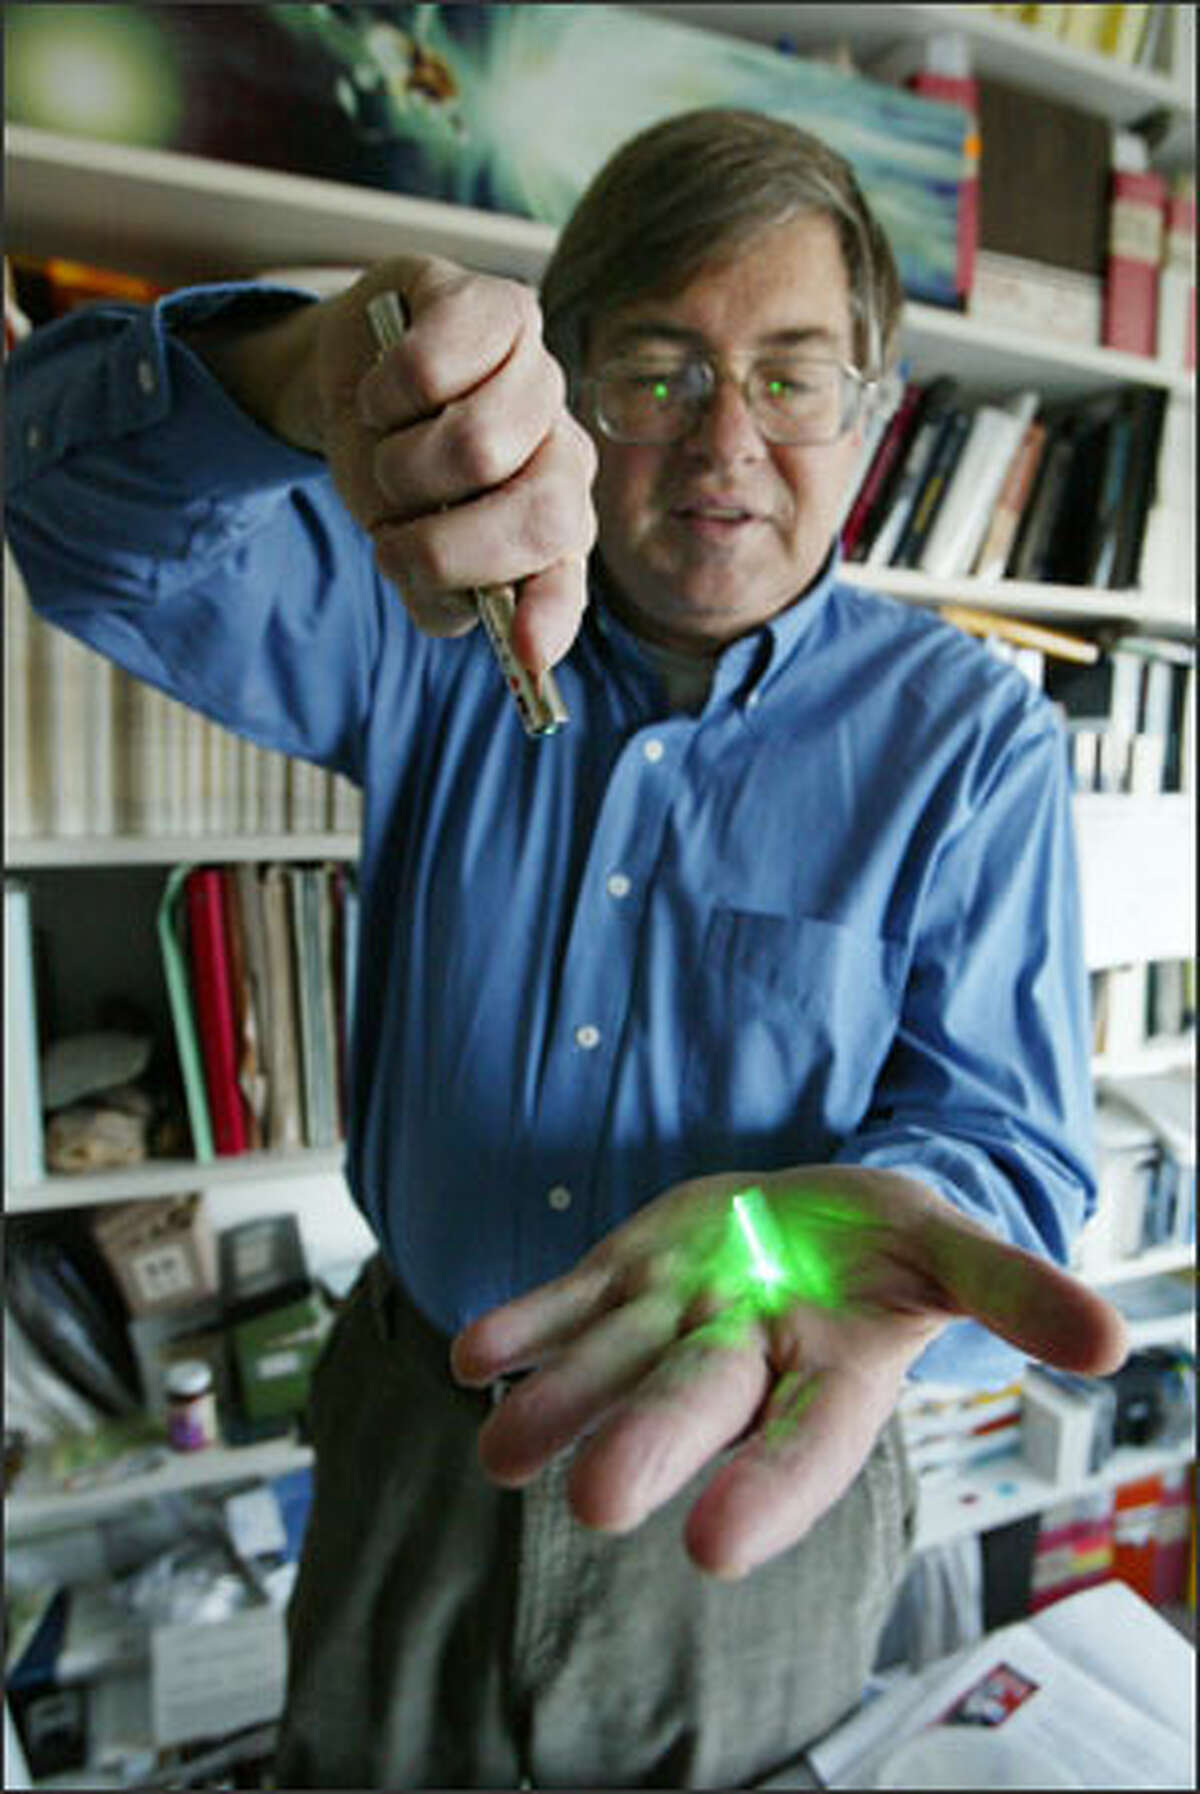 UW astronomer and Stardust lead scientist Don Brownlee illuminates, with a laser pen, a material called aerogel, a superlight glass foam used on Stardust to collect cosmic dust.